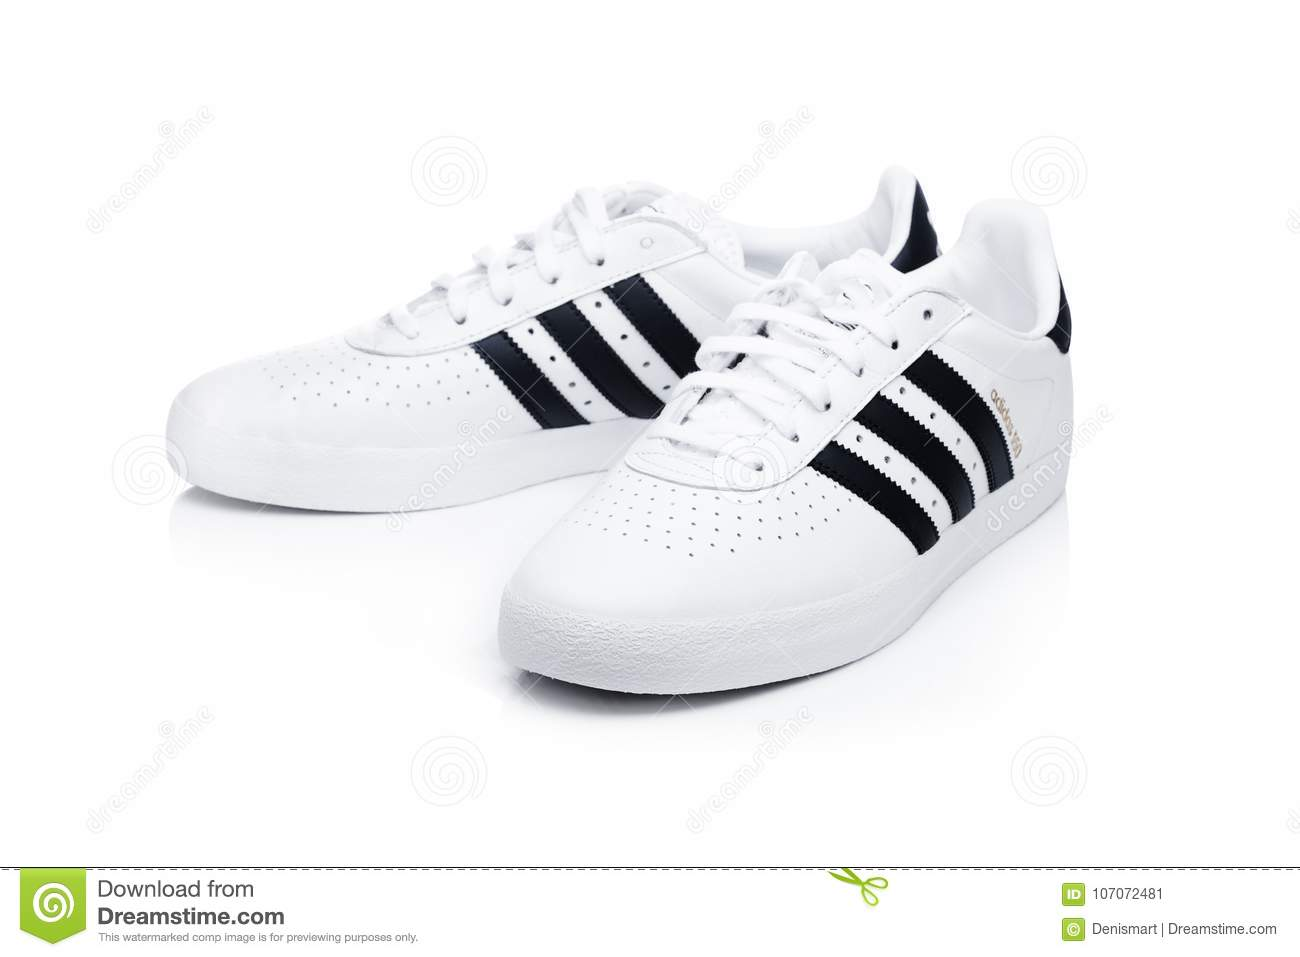 zapatos adidas originales 2018 white